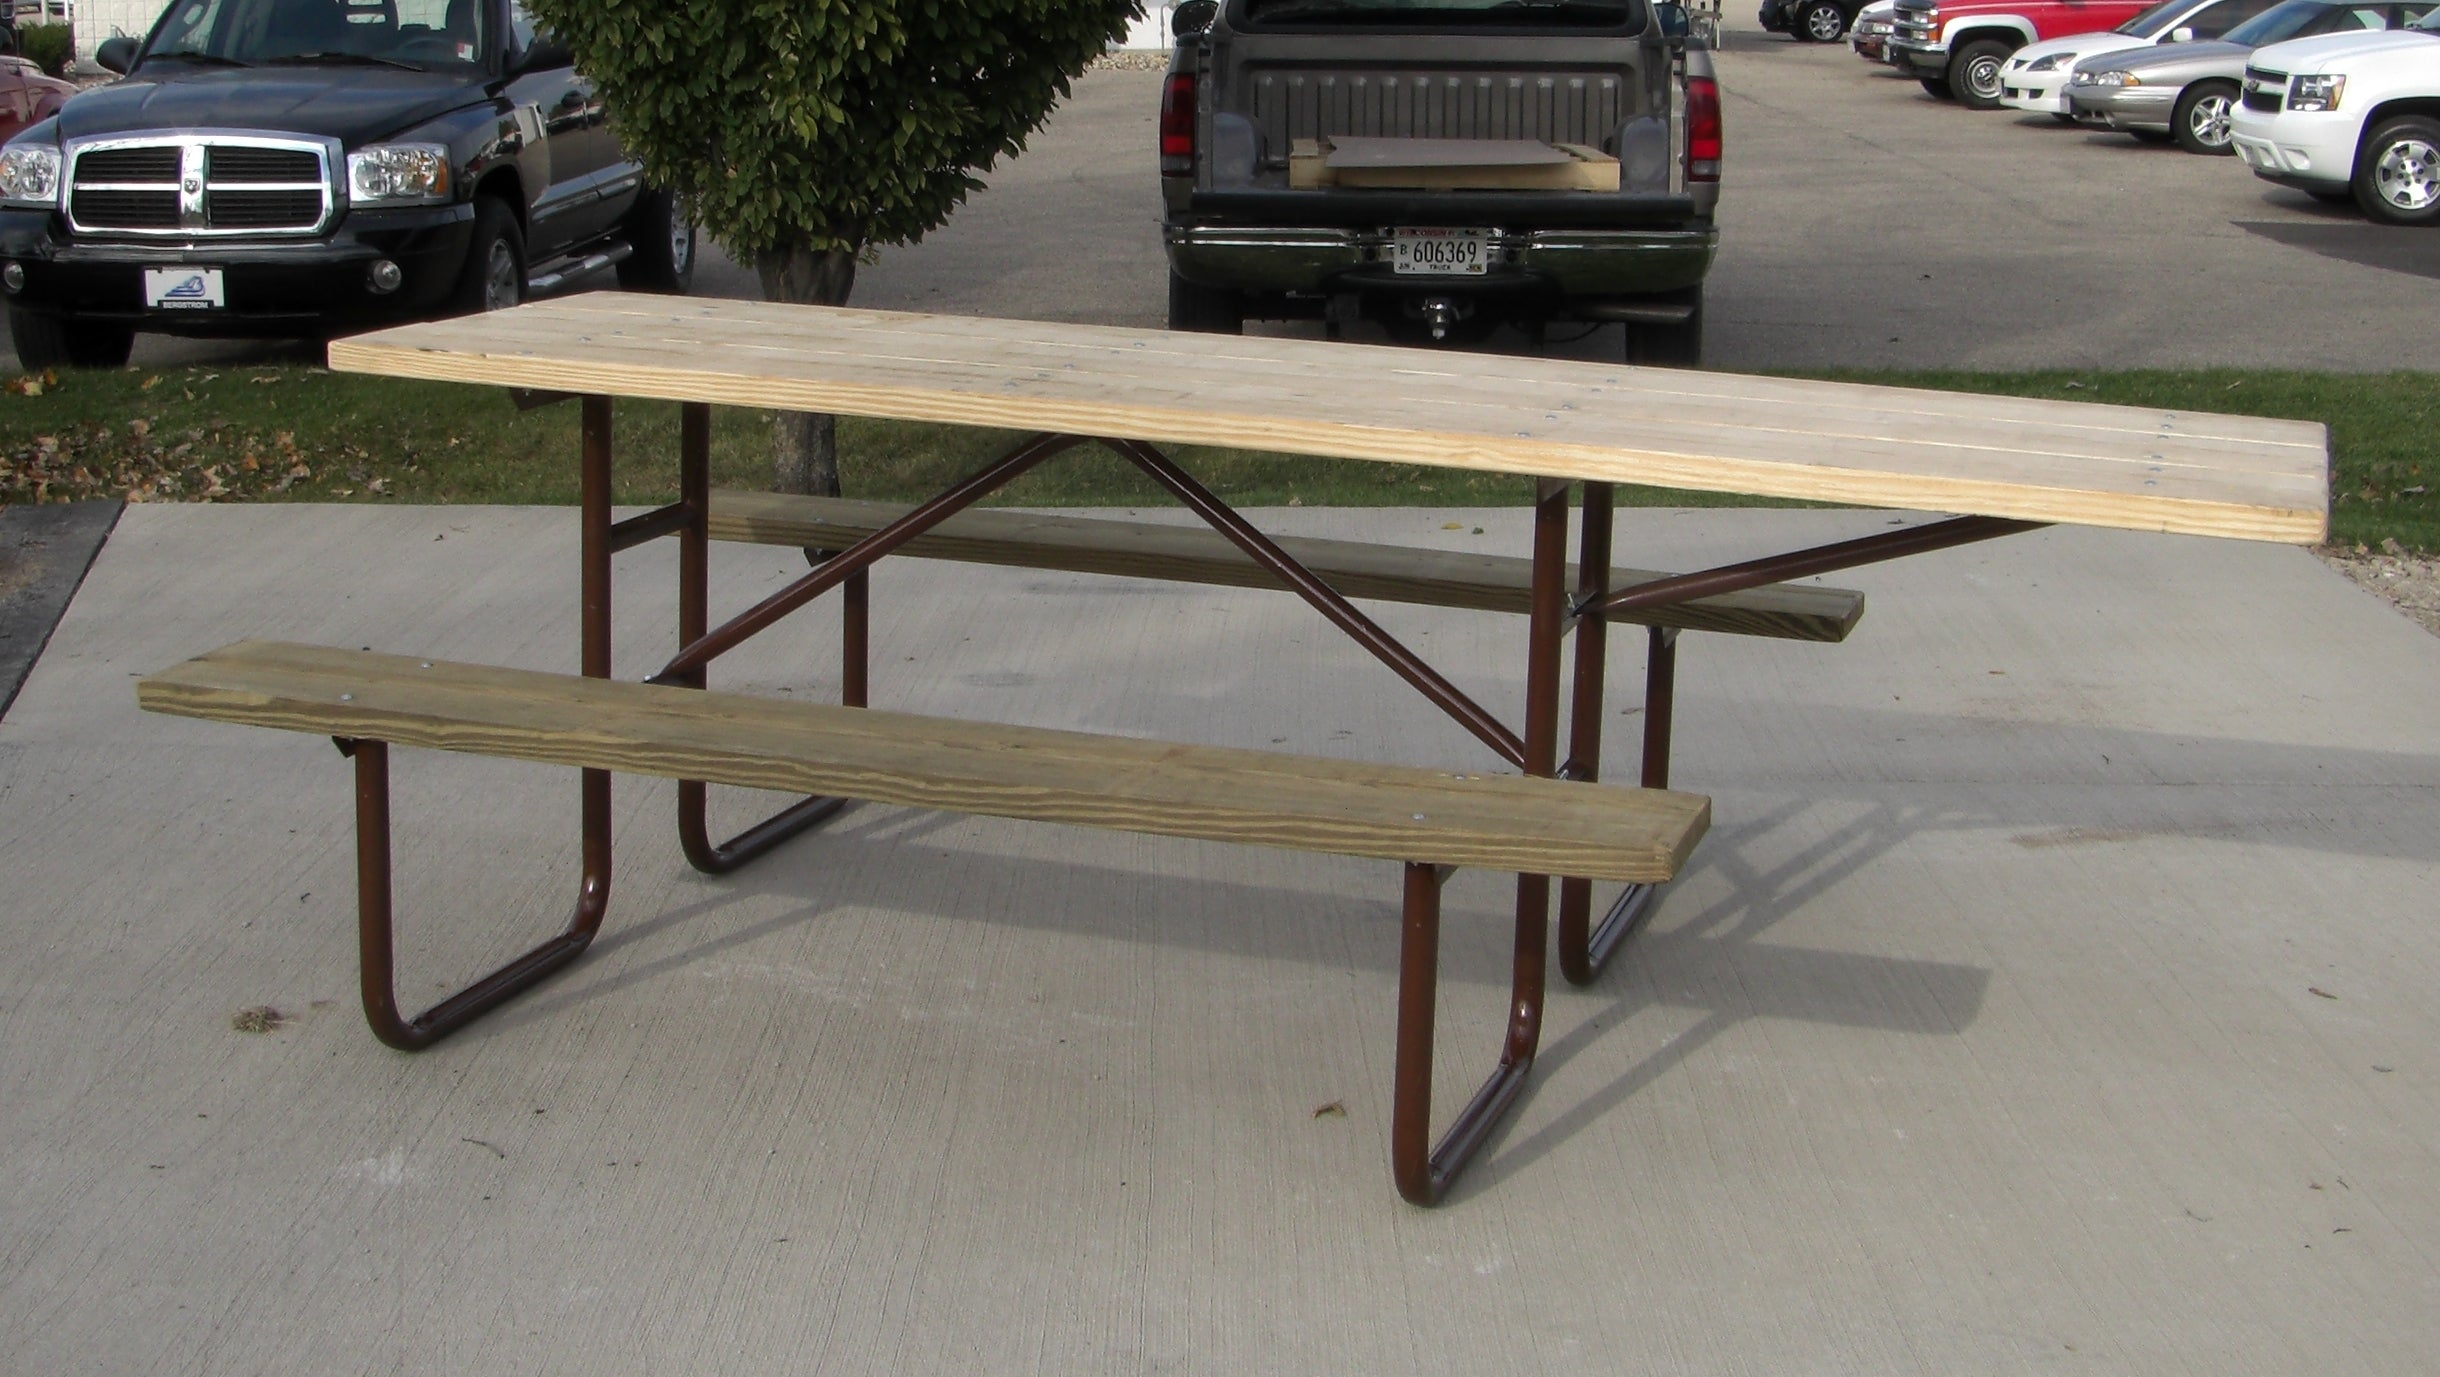 Wheelchair Heavy Duty Table - UNTREATED Lumber